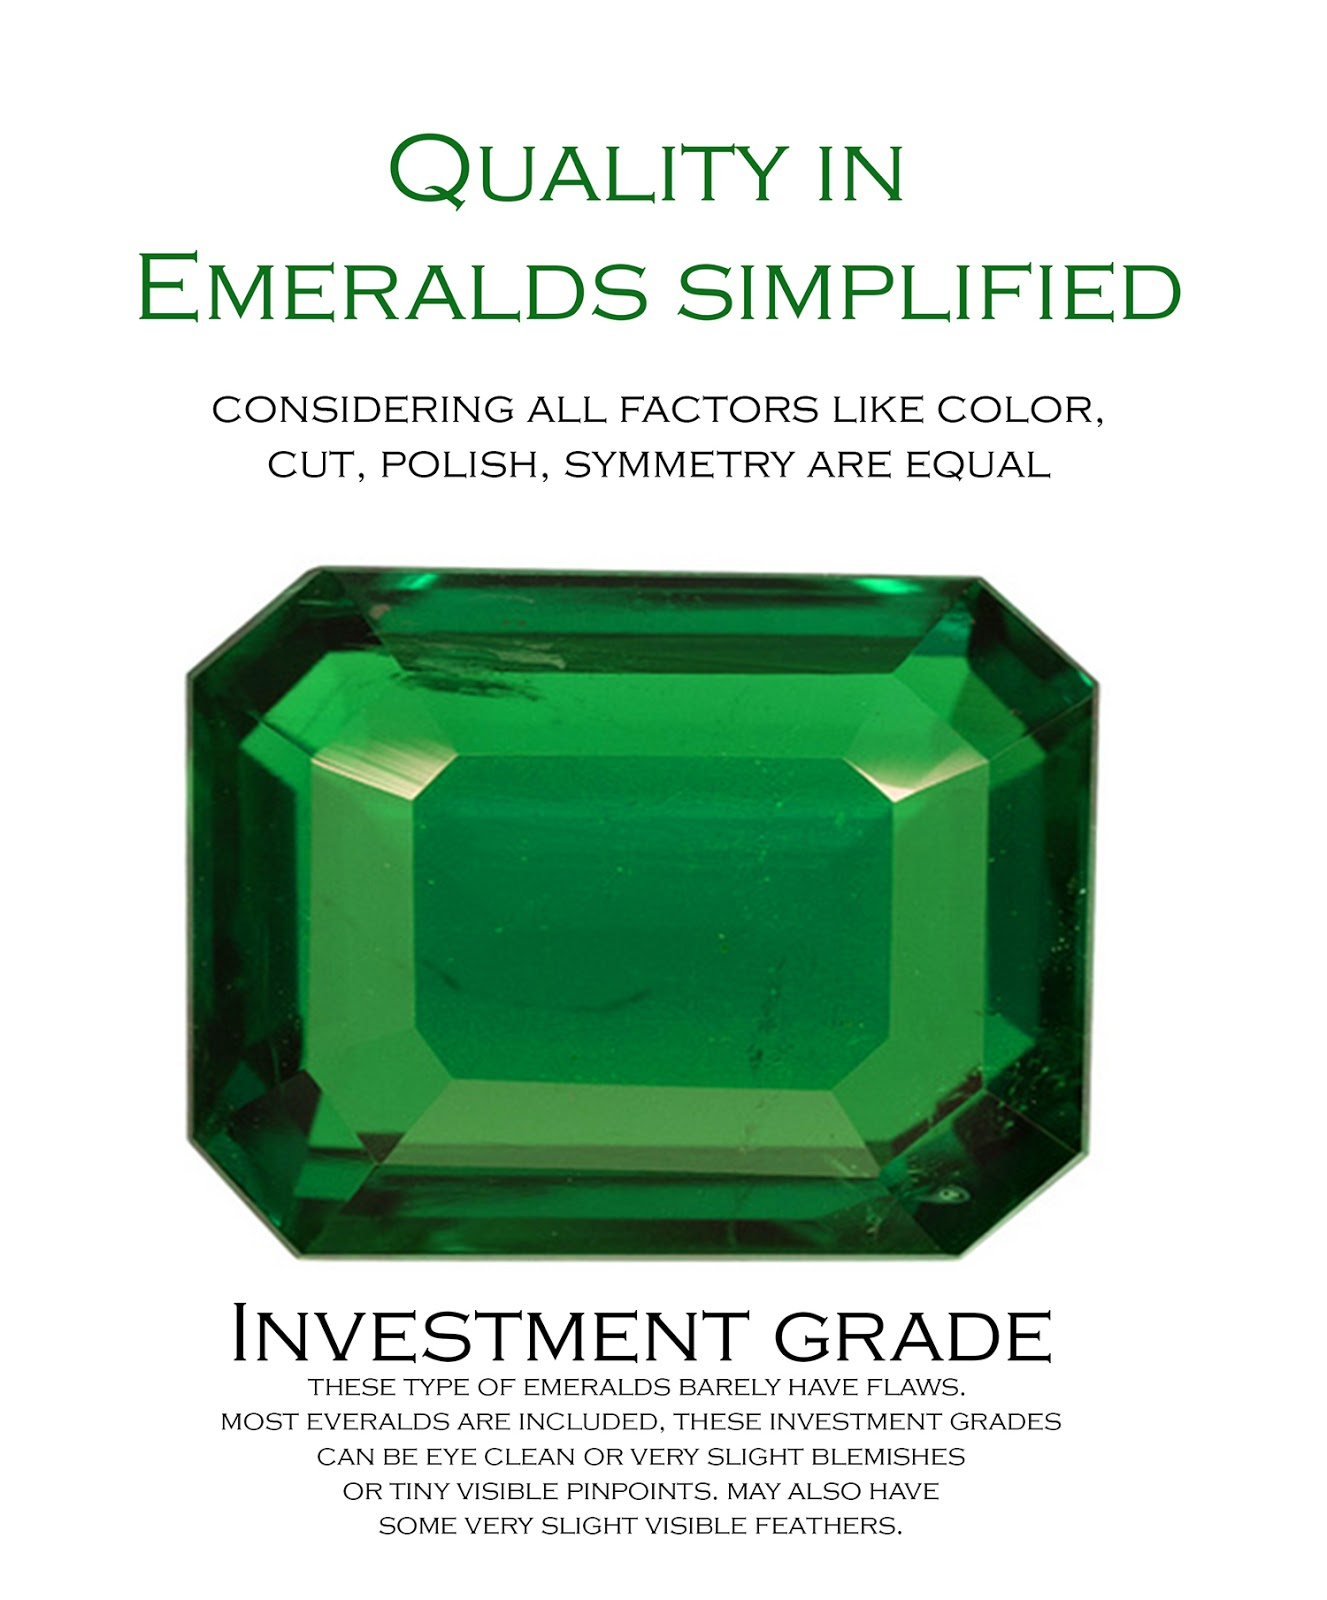 columbian ct gemstone florida emerald products curios cut